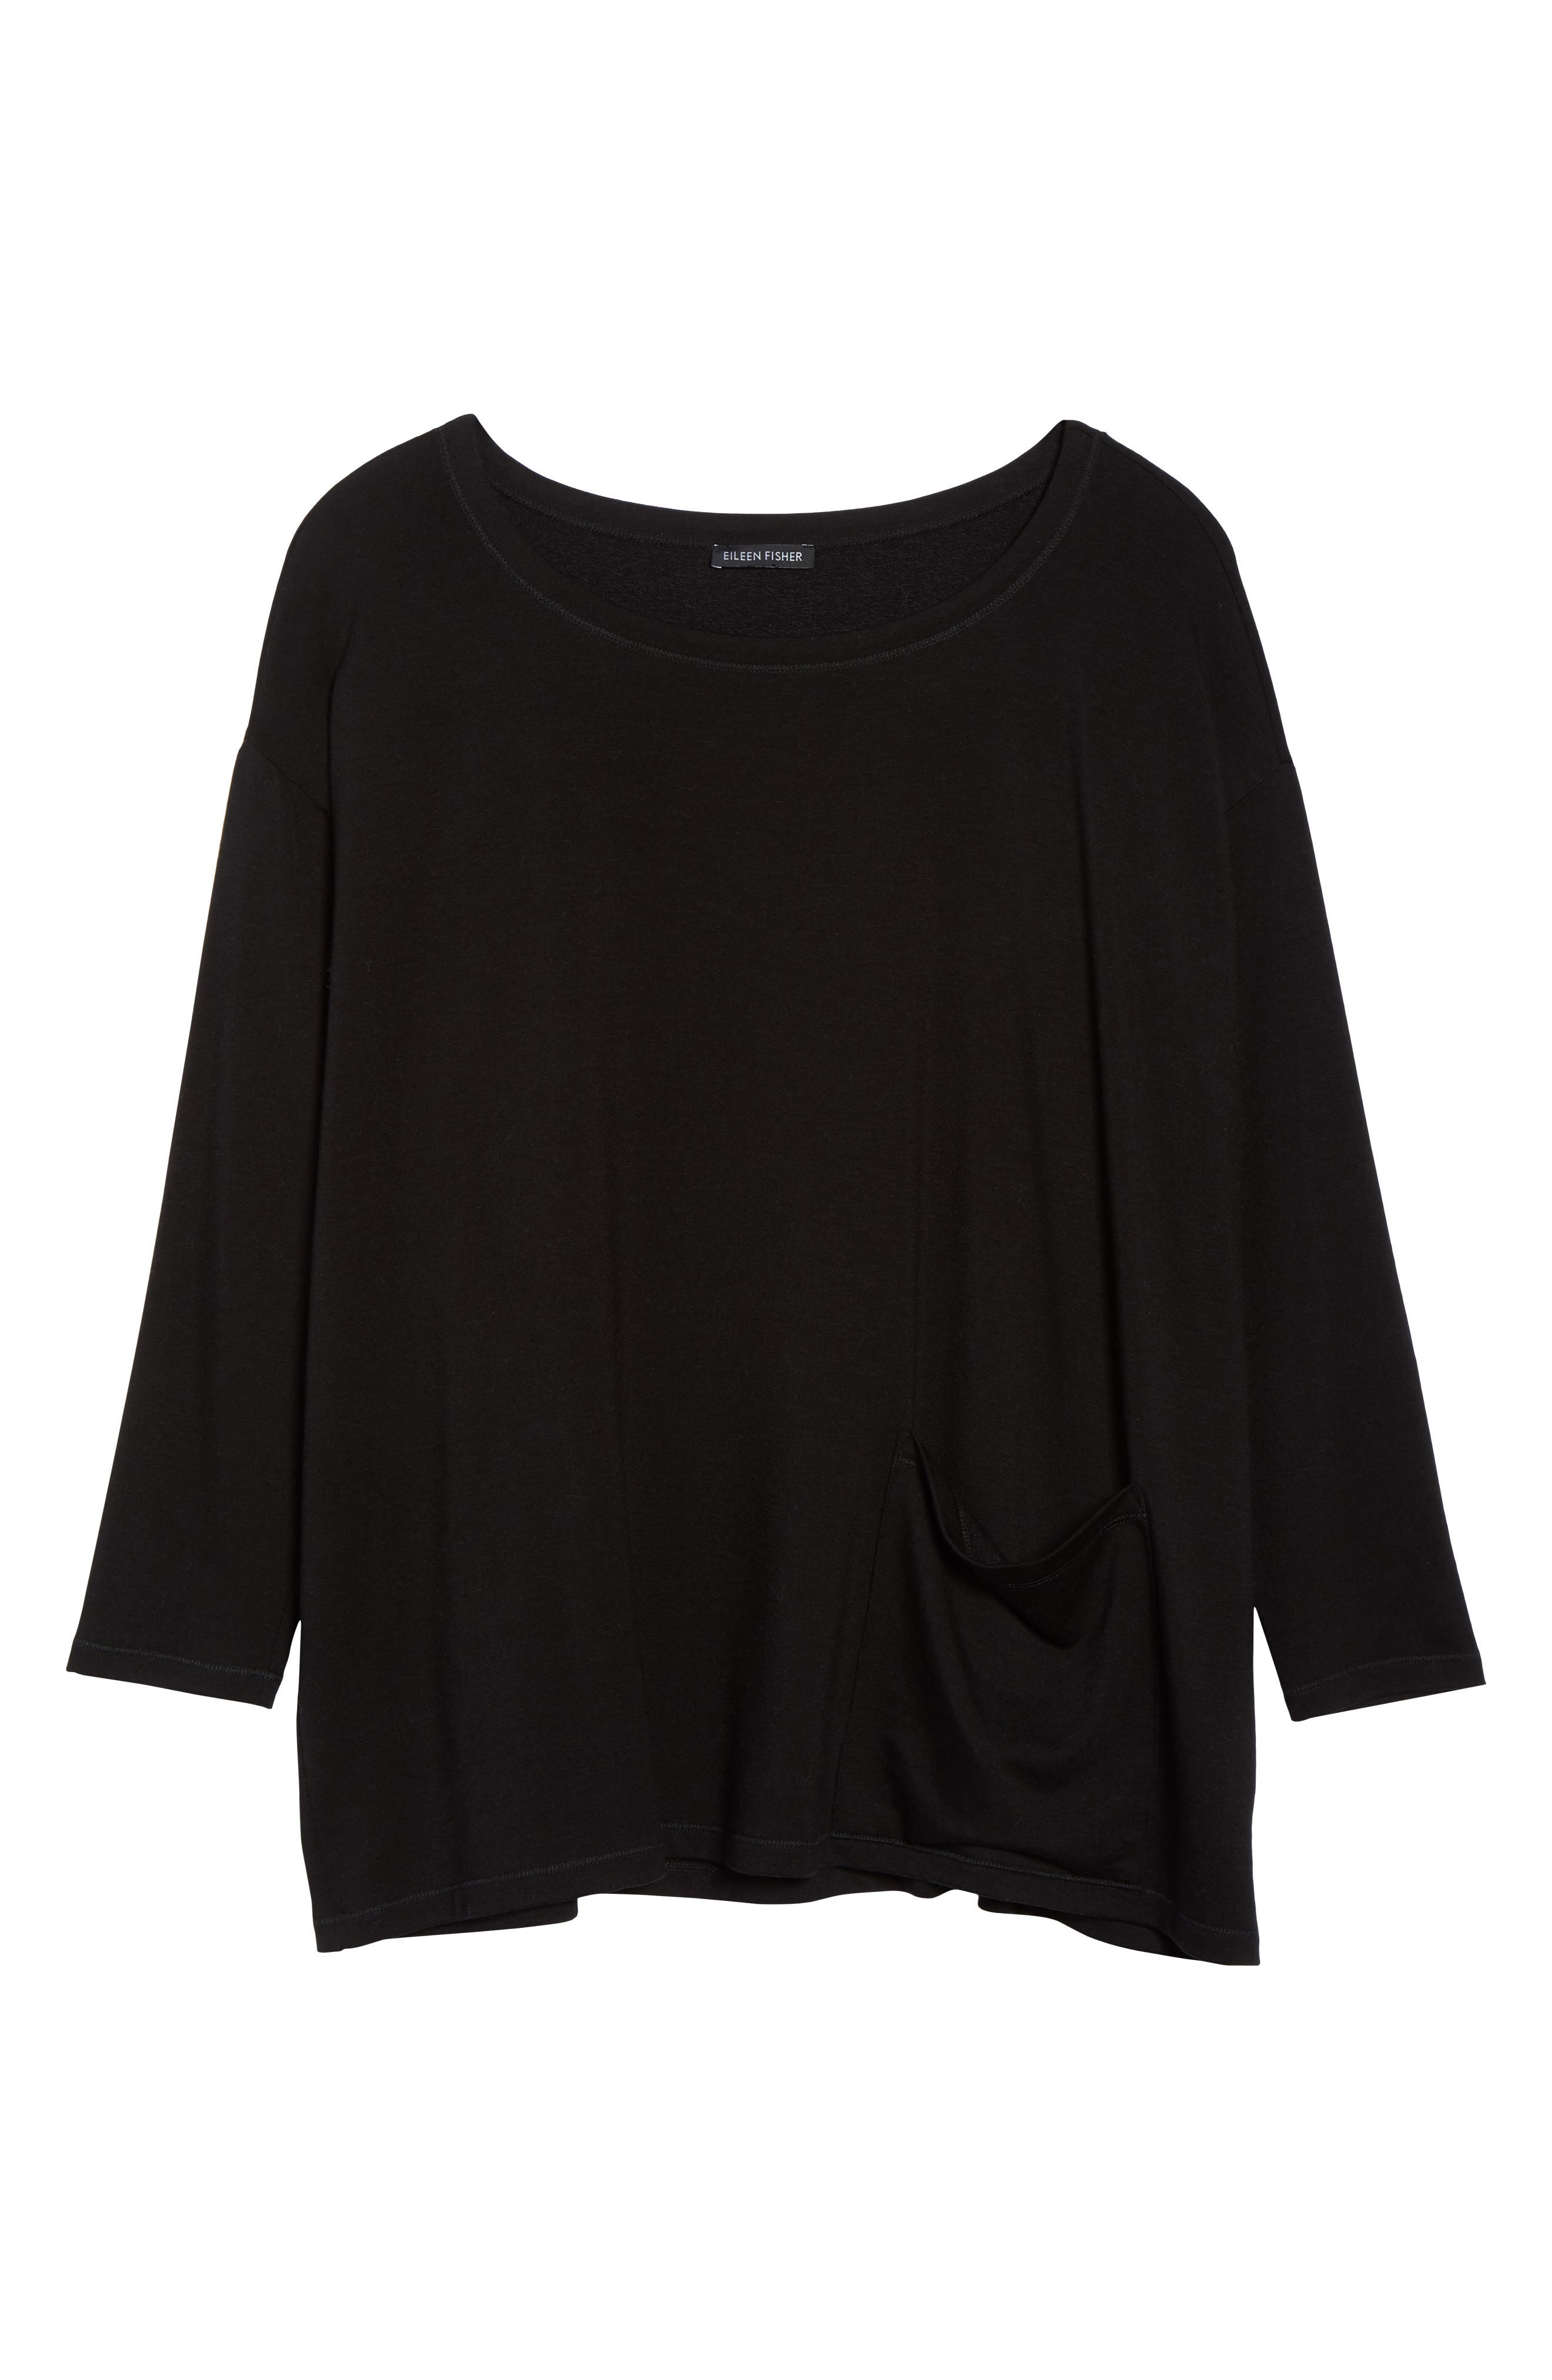 Stretch Terry Top,                             Alternate thumbnail 11, color,                             BLACK